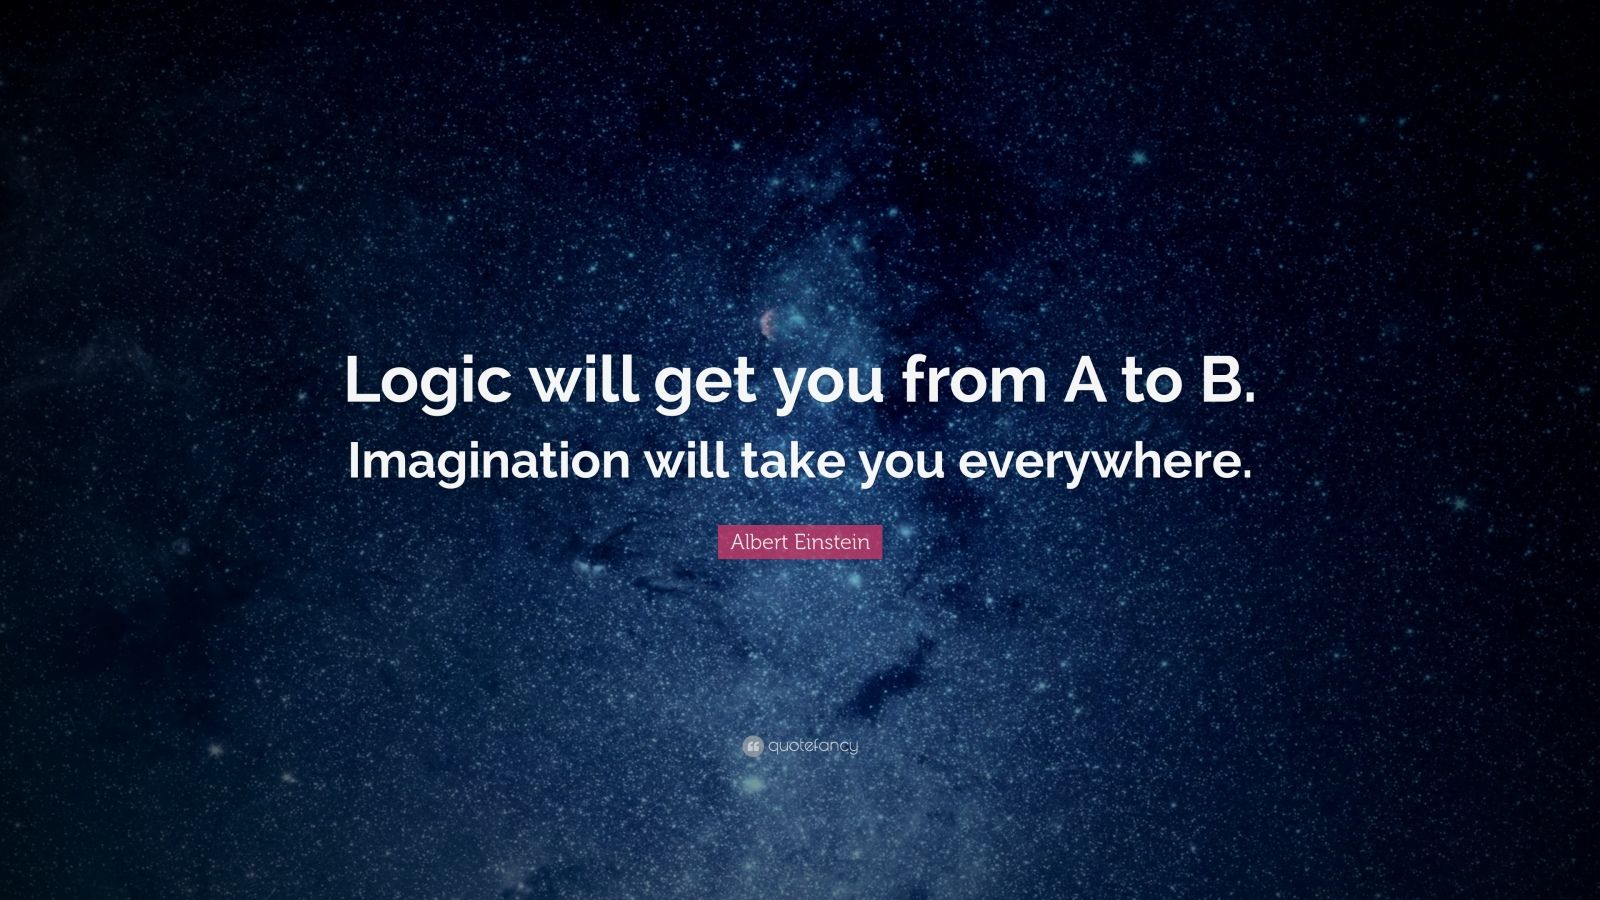 Dance With God Quotes Laptop Wallpaper Albert Einstein Quote Logic Will Get You From A To B